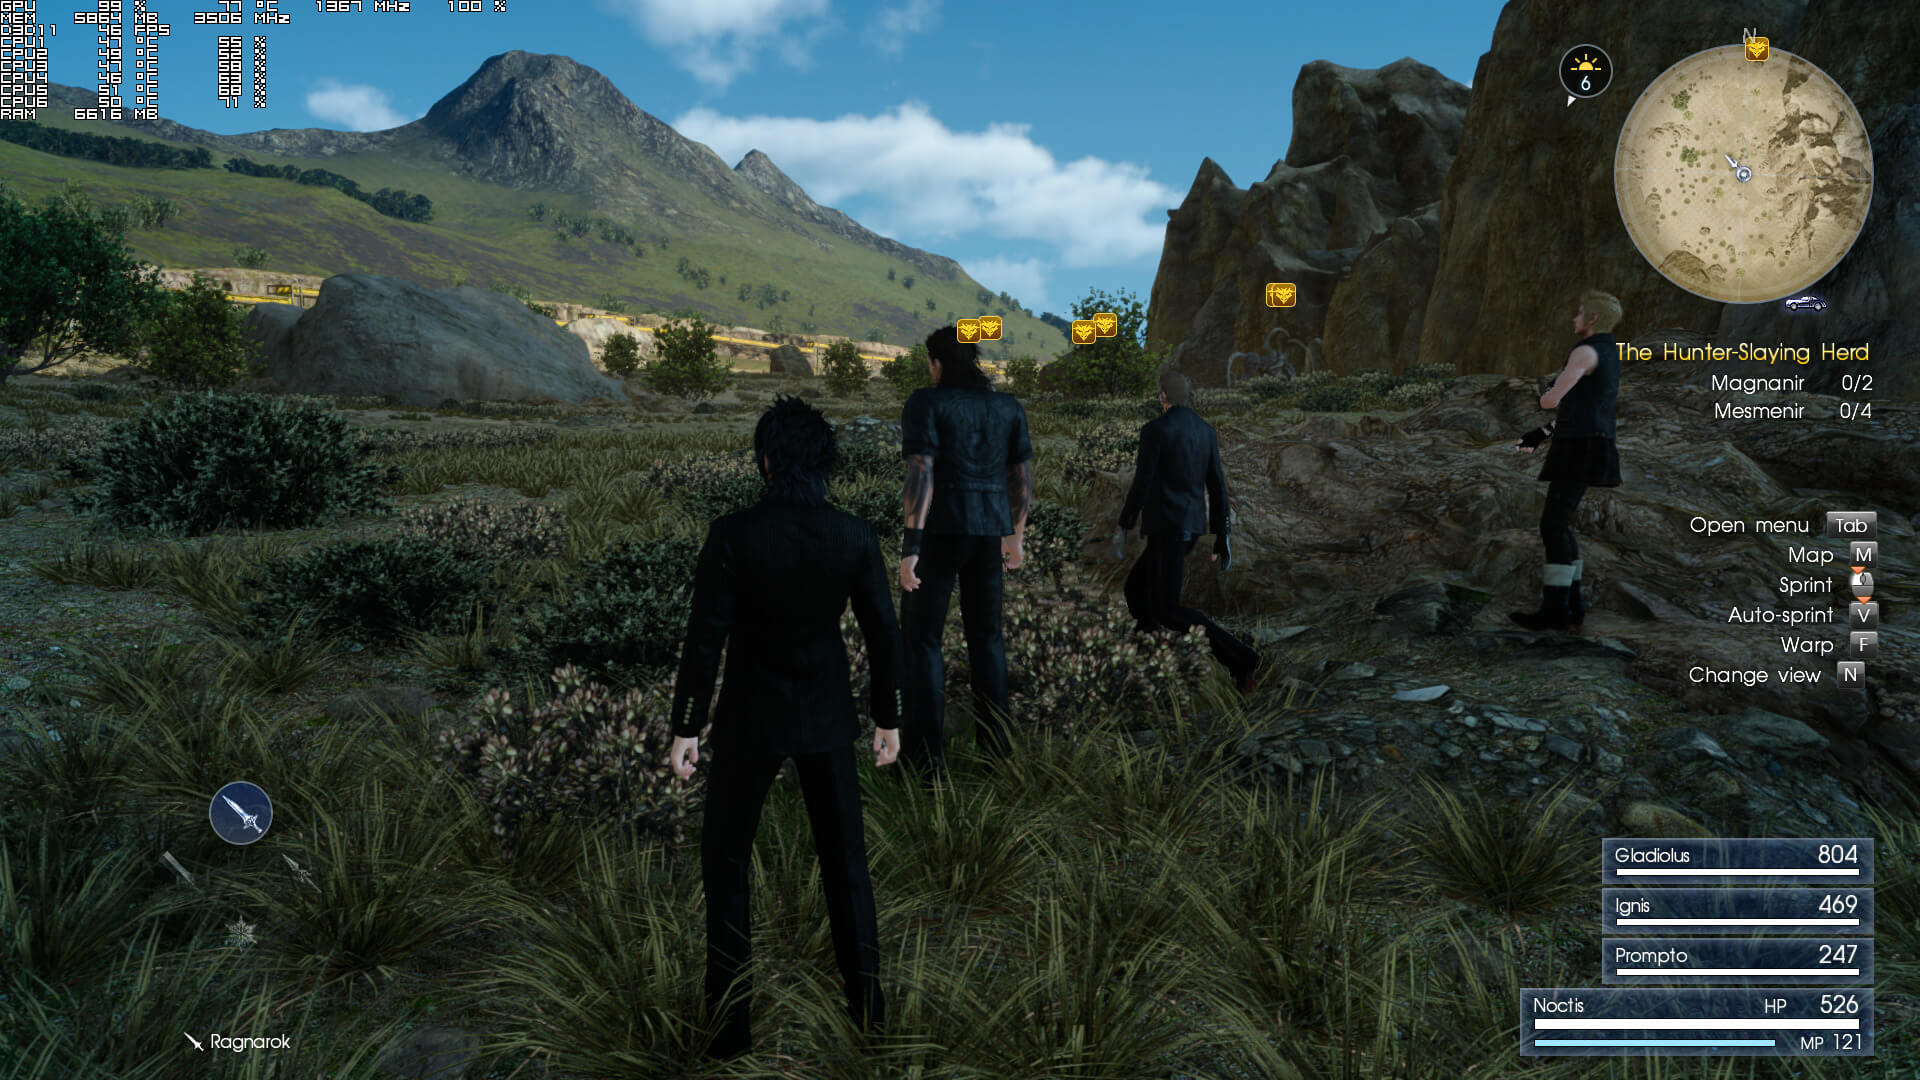 Report: The pirated version of Final Fantasy XV runs faster/better